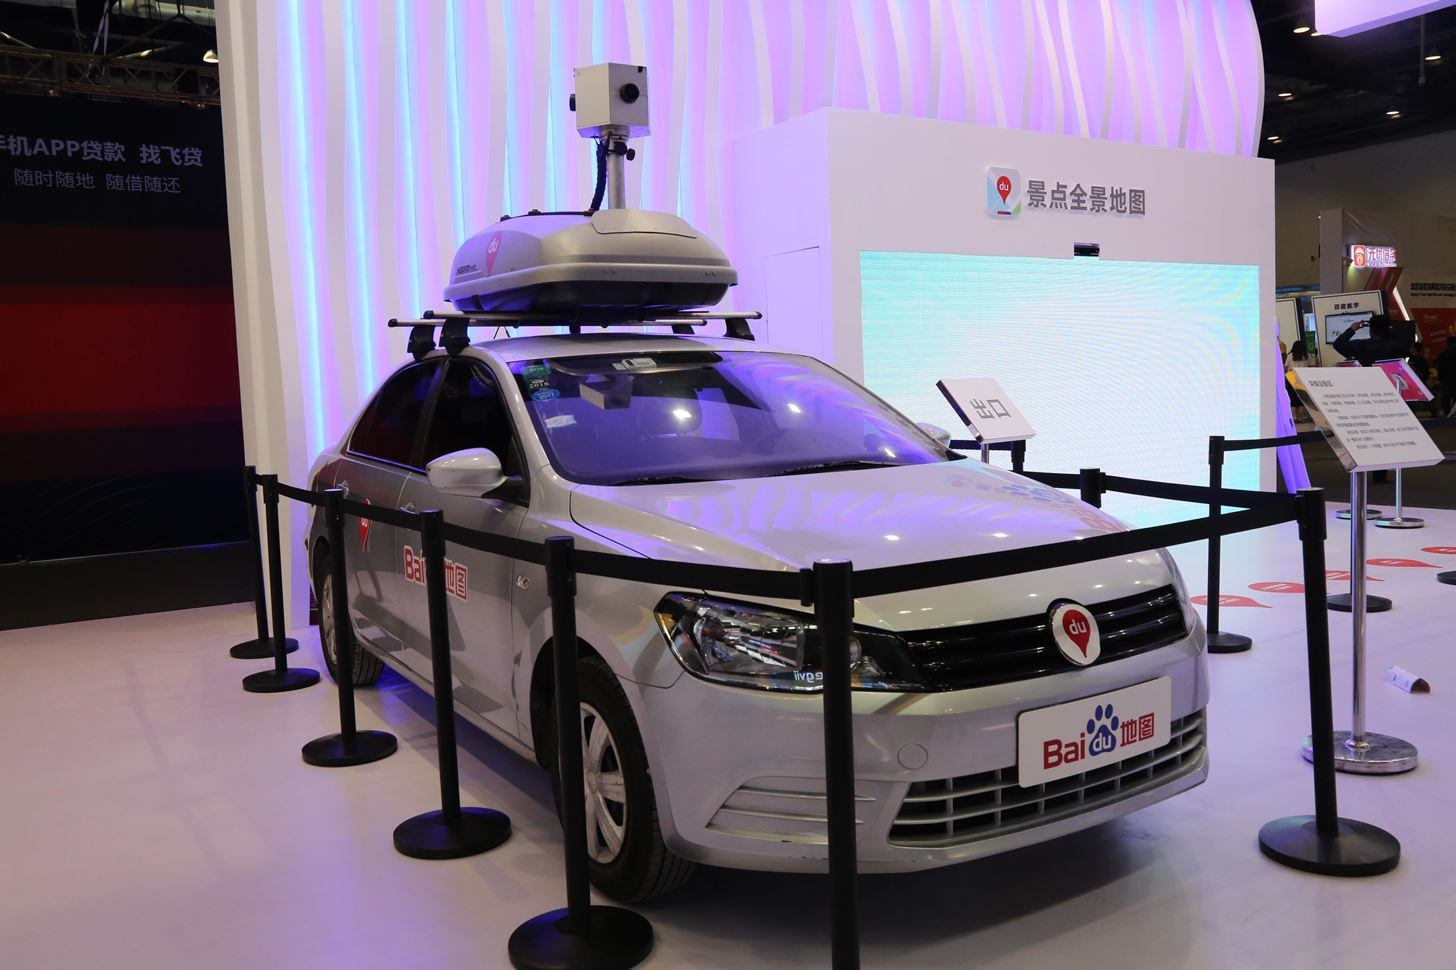 'Hackers-for-Hire' Attempted to Steal Baidu's Self-Driving Car Secrets